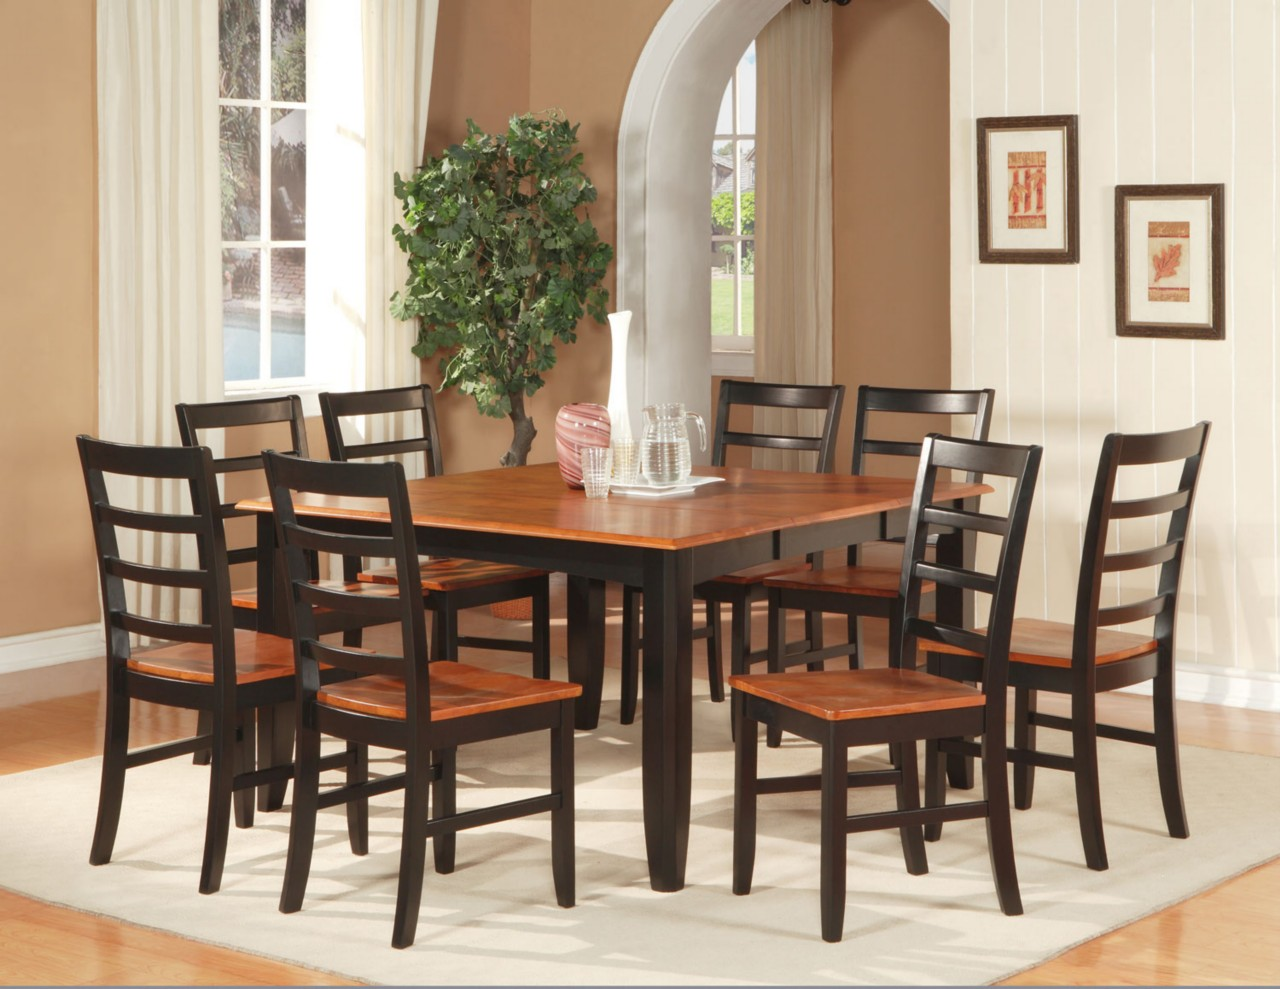 9 pc square dinette dining room table set and 8 chairs ebay for Images of dining room tables